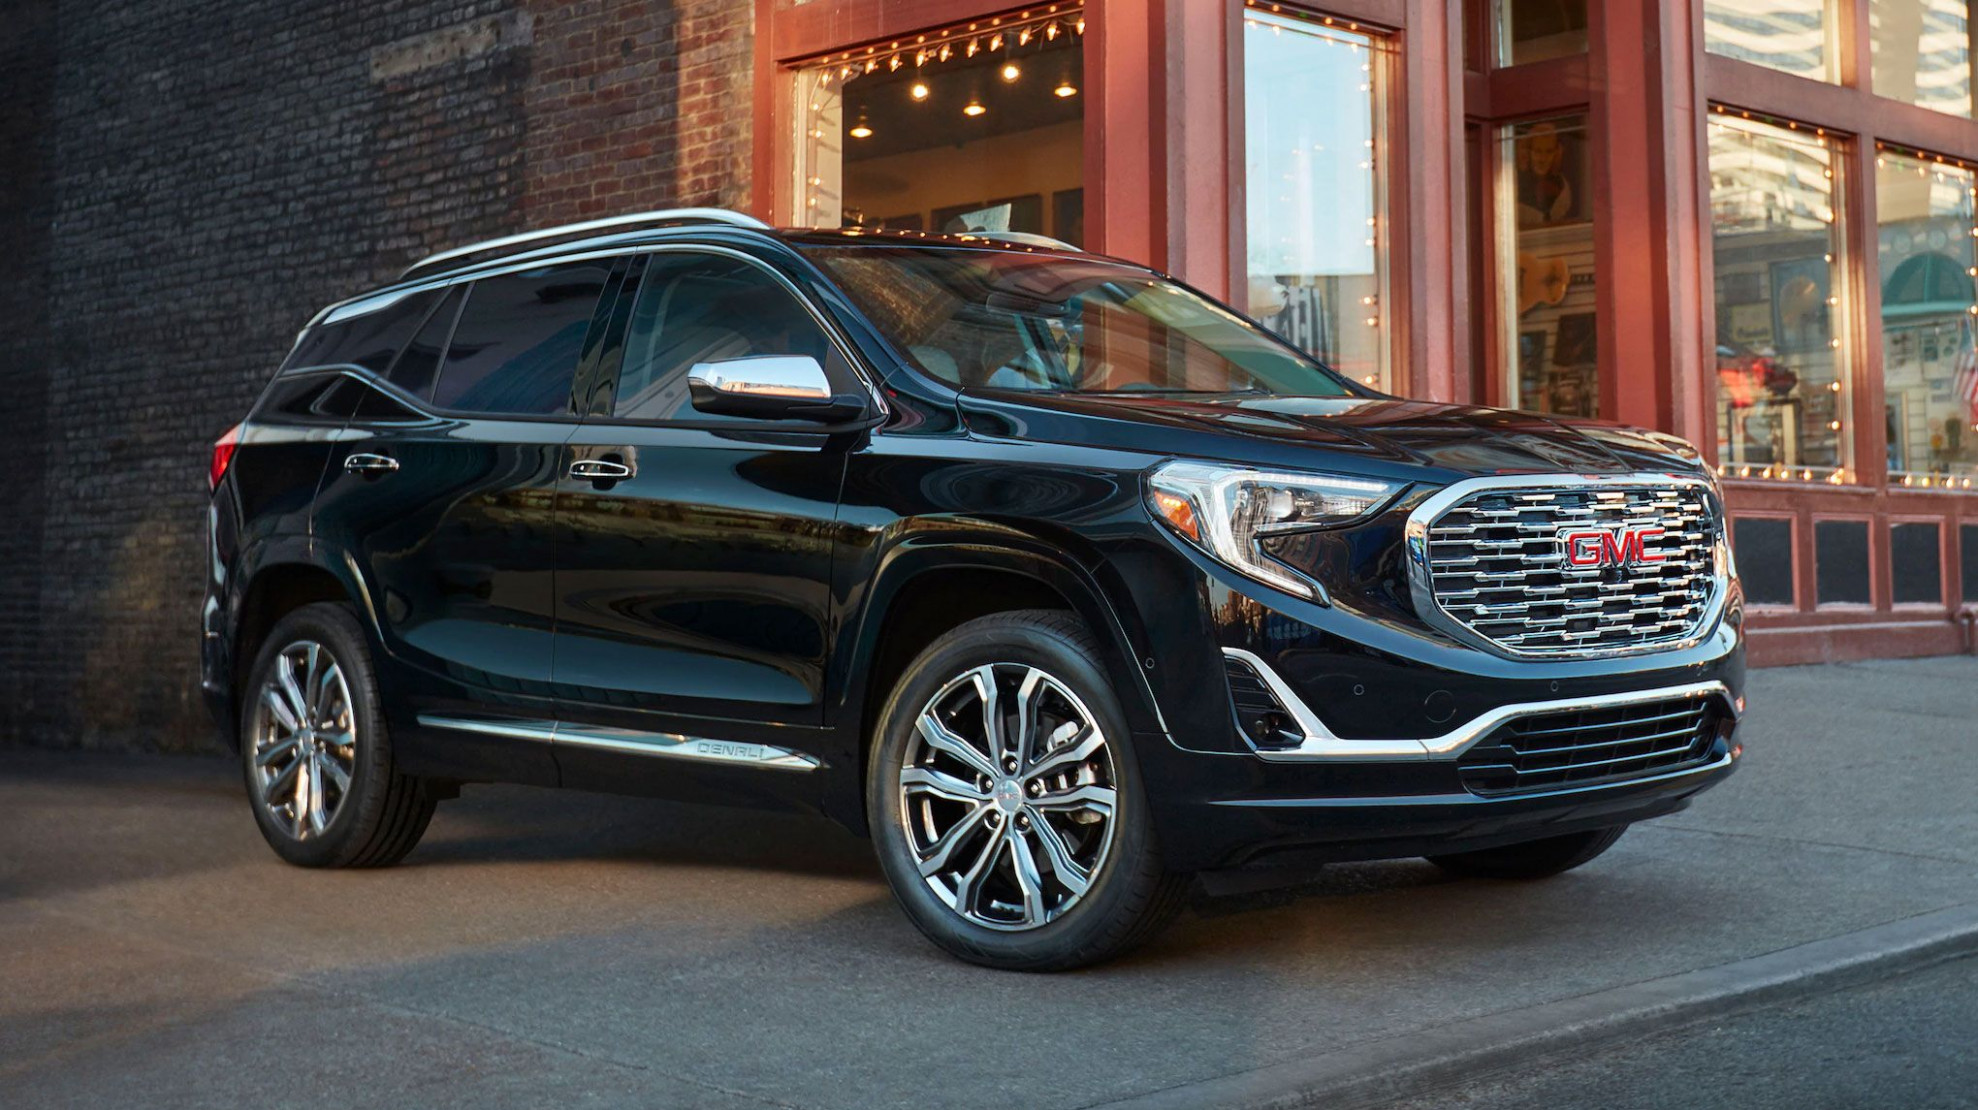 8 GMC Terrain Review, Pricing, and Specs